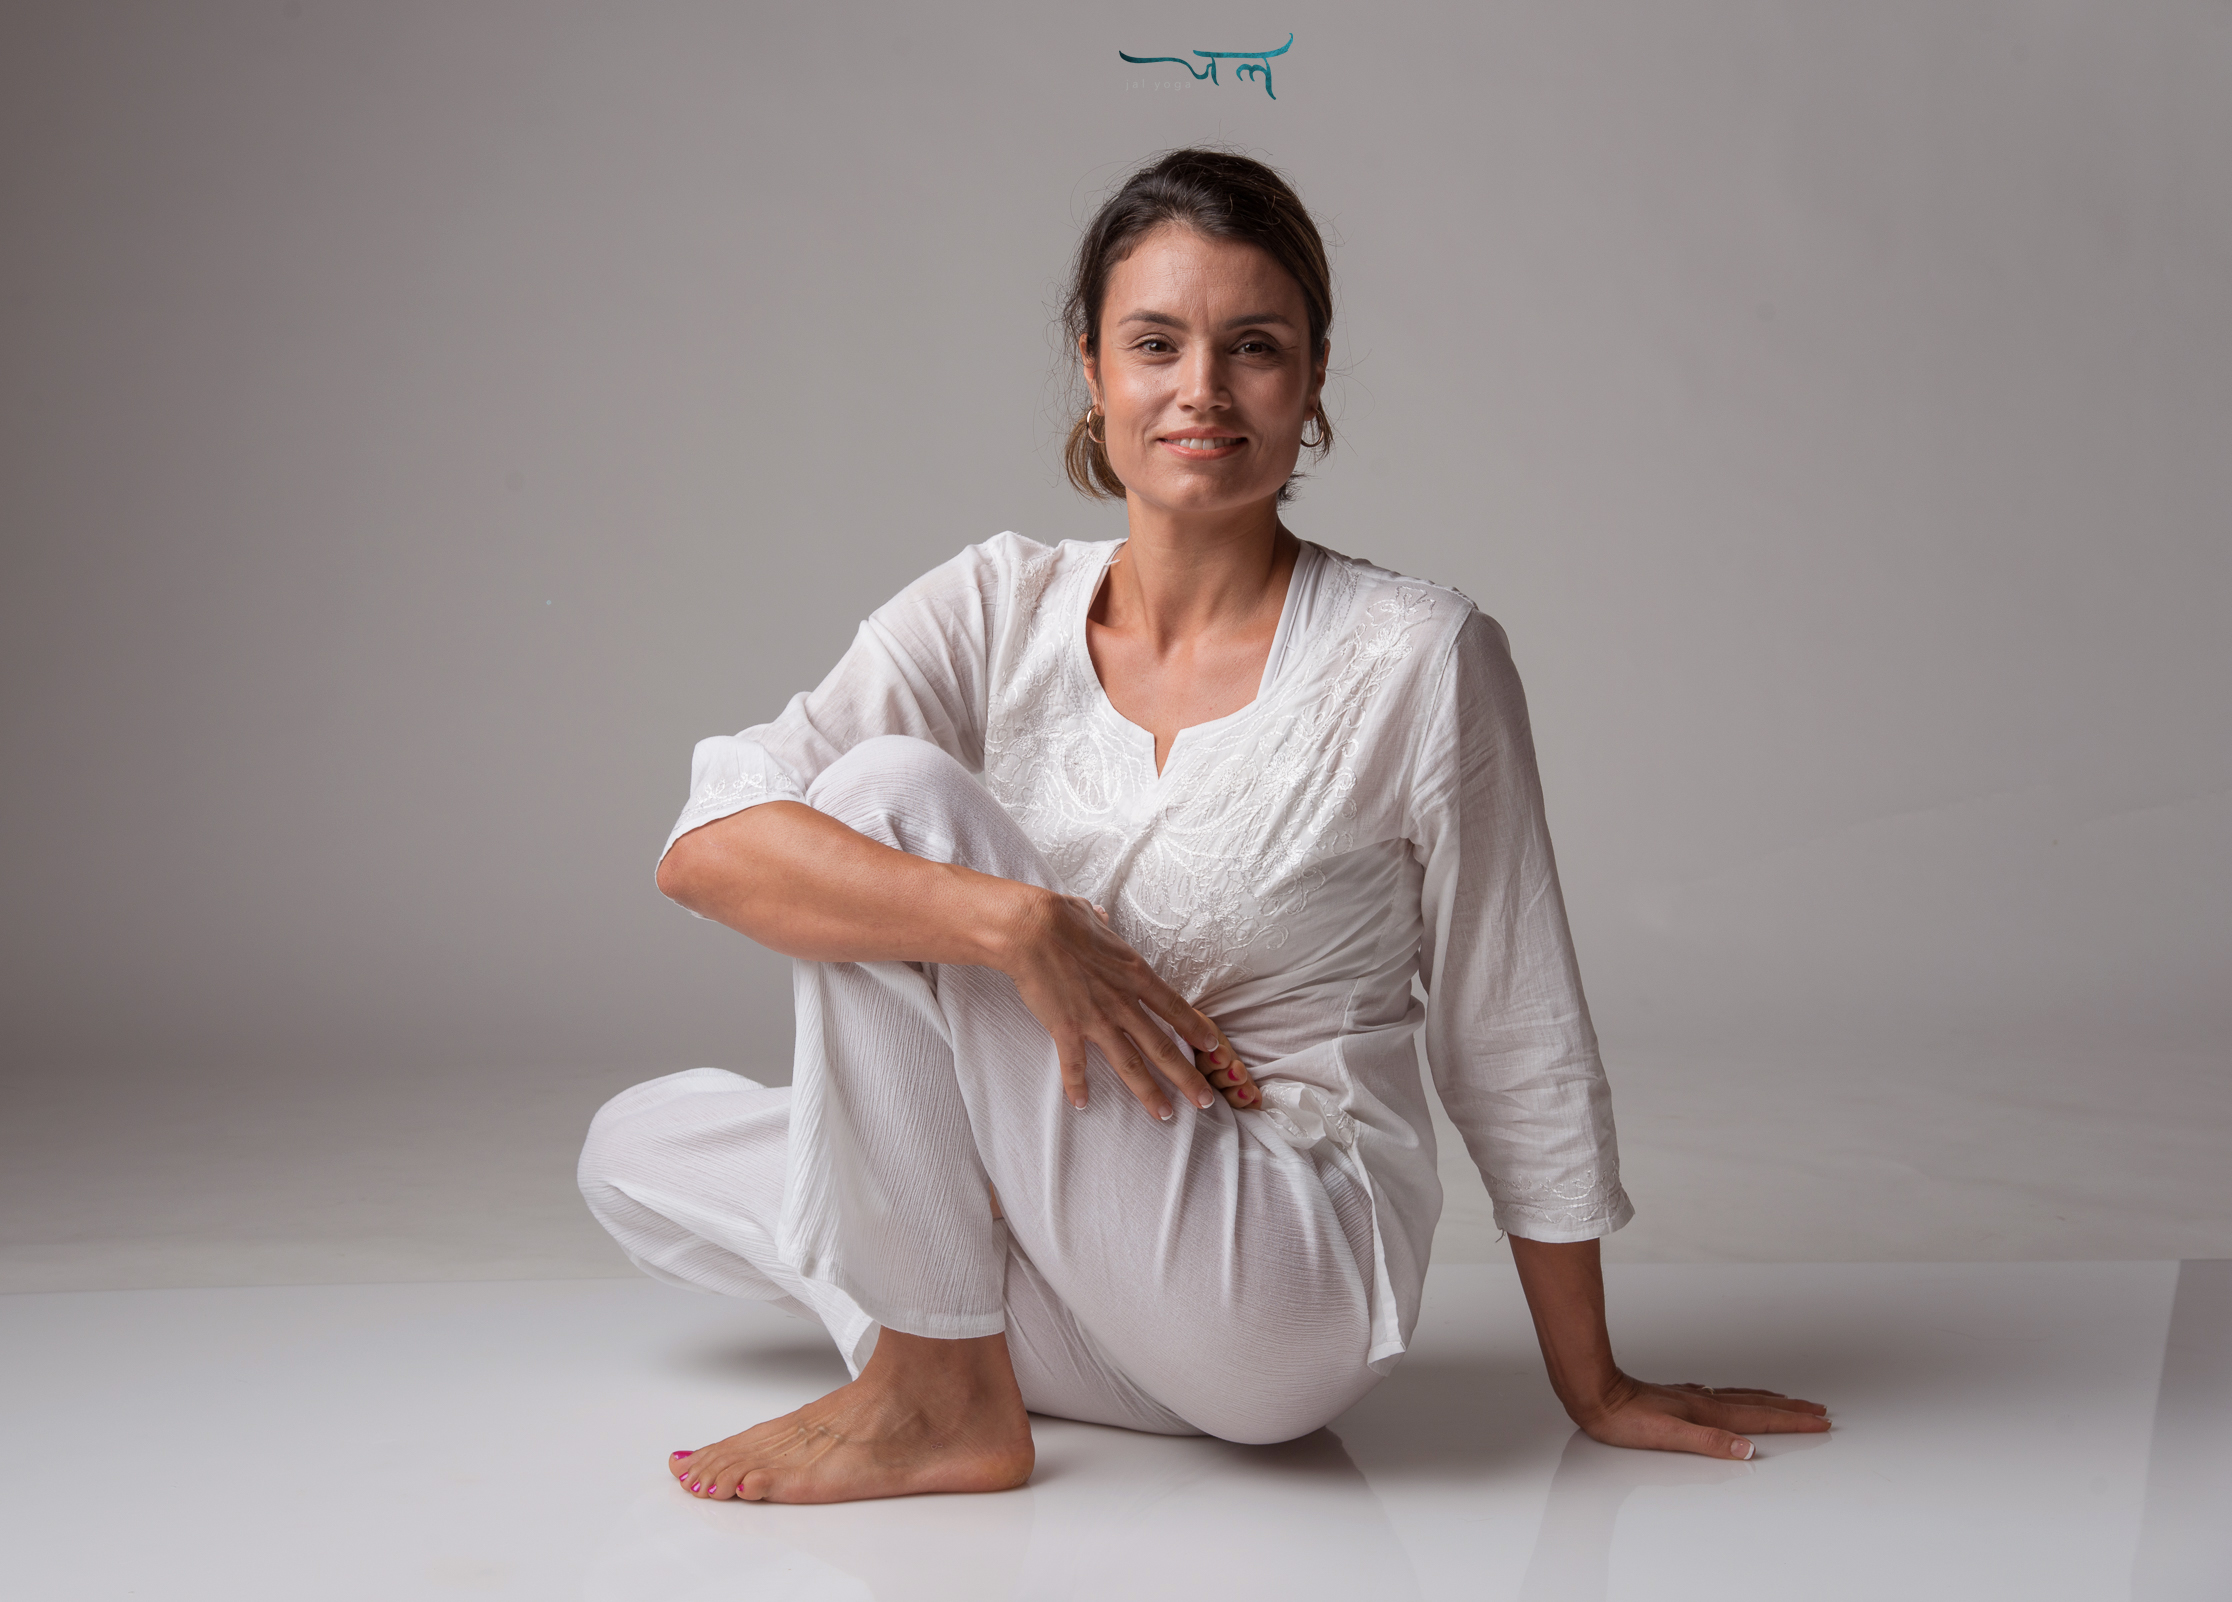 Jal Yoga Instructor Shares How They Express Gratitude Through Their Yoga Practice